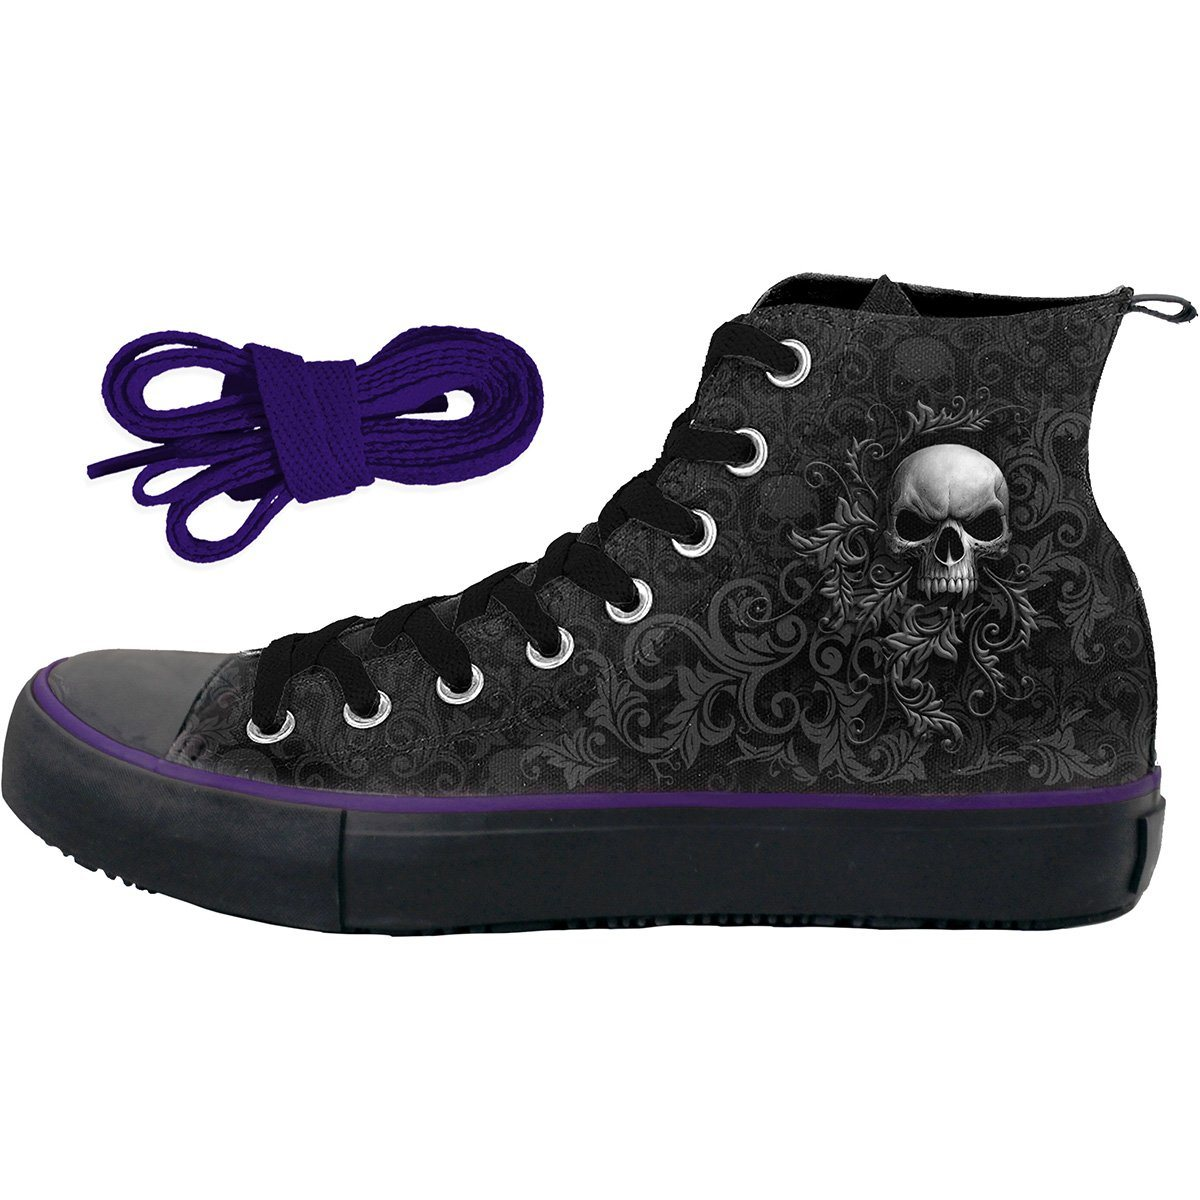 Scrolling Skulls Women's High-Top Sneakers